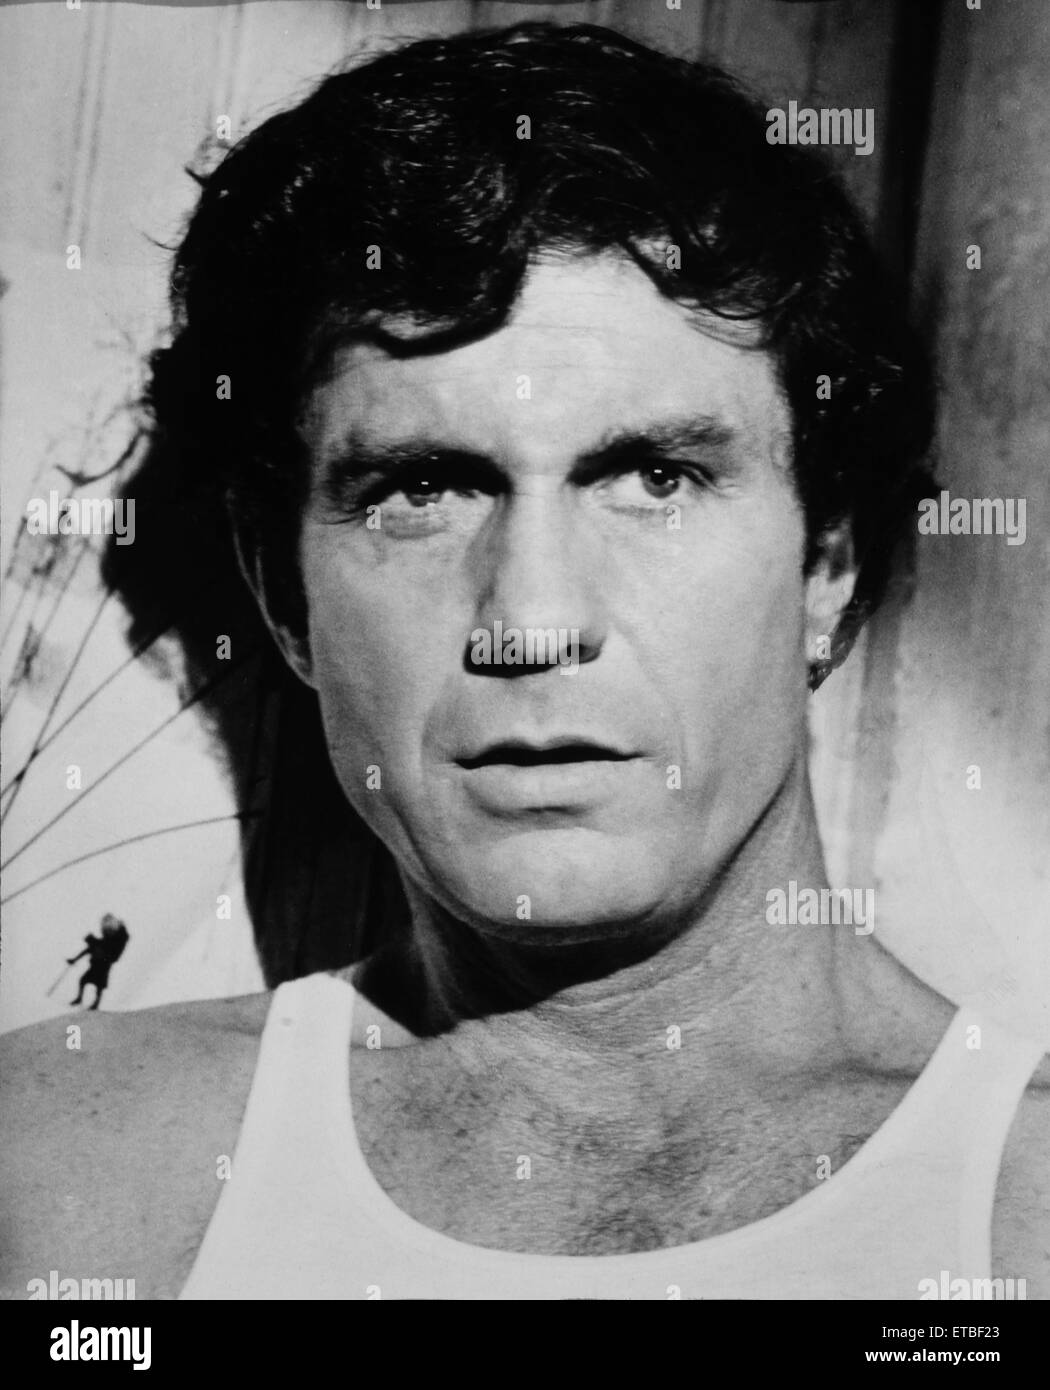 Cliff Robertson, Portrait from the Film 'Charly', 1968 - Stock Image